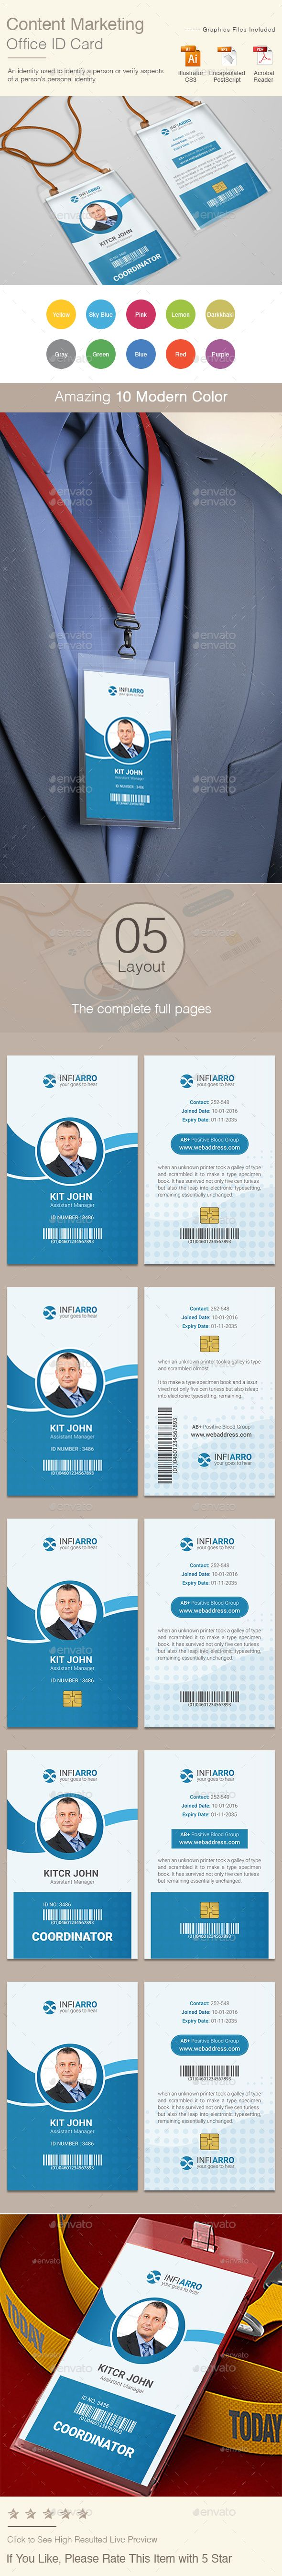 Content Marketing Office ID Card - Miscellaneous Print Templates